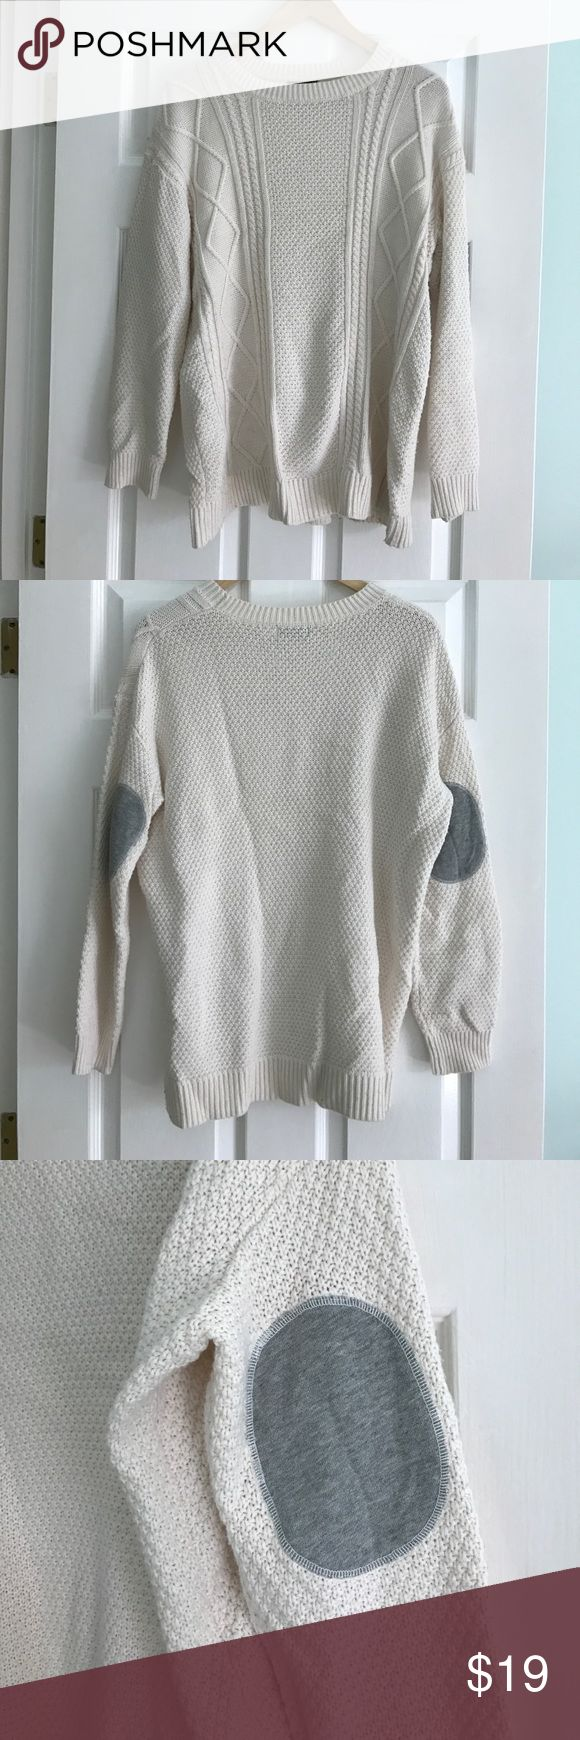 BDG elbow patch pullover sweater Off white sweater bought from Urban outfitter! Fair condition. Great with anything! Urban Outfitters Sweaters Crew & Scoop Necks